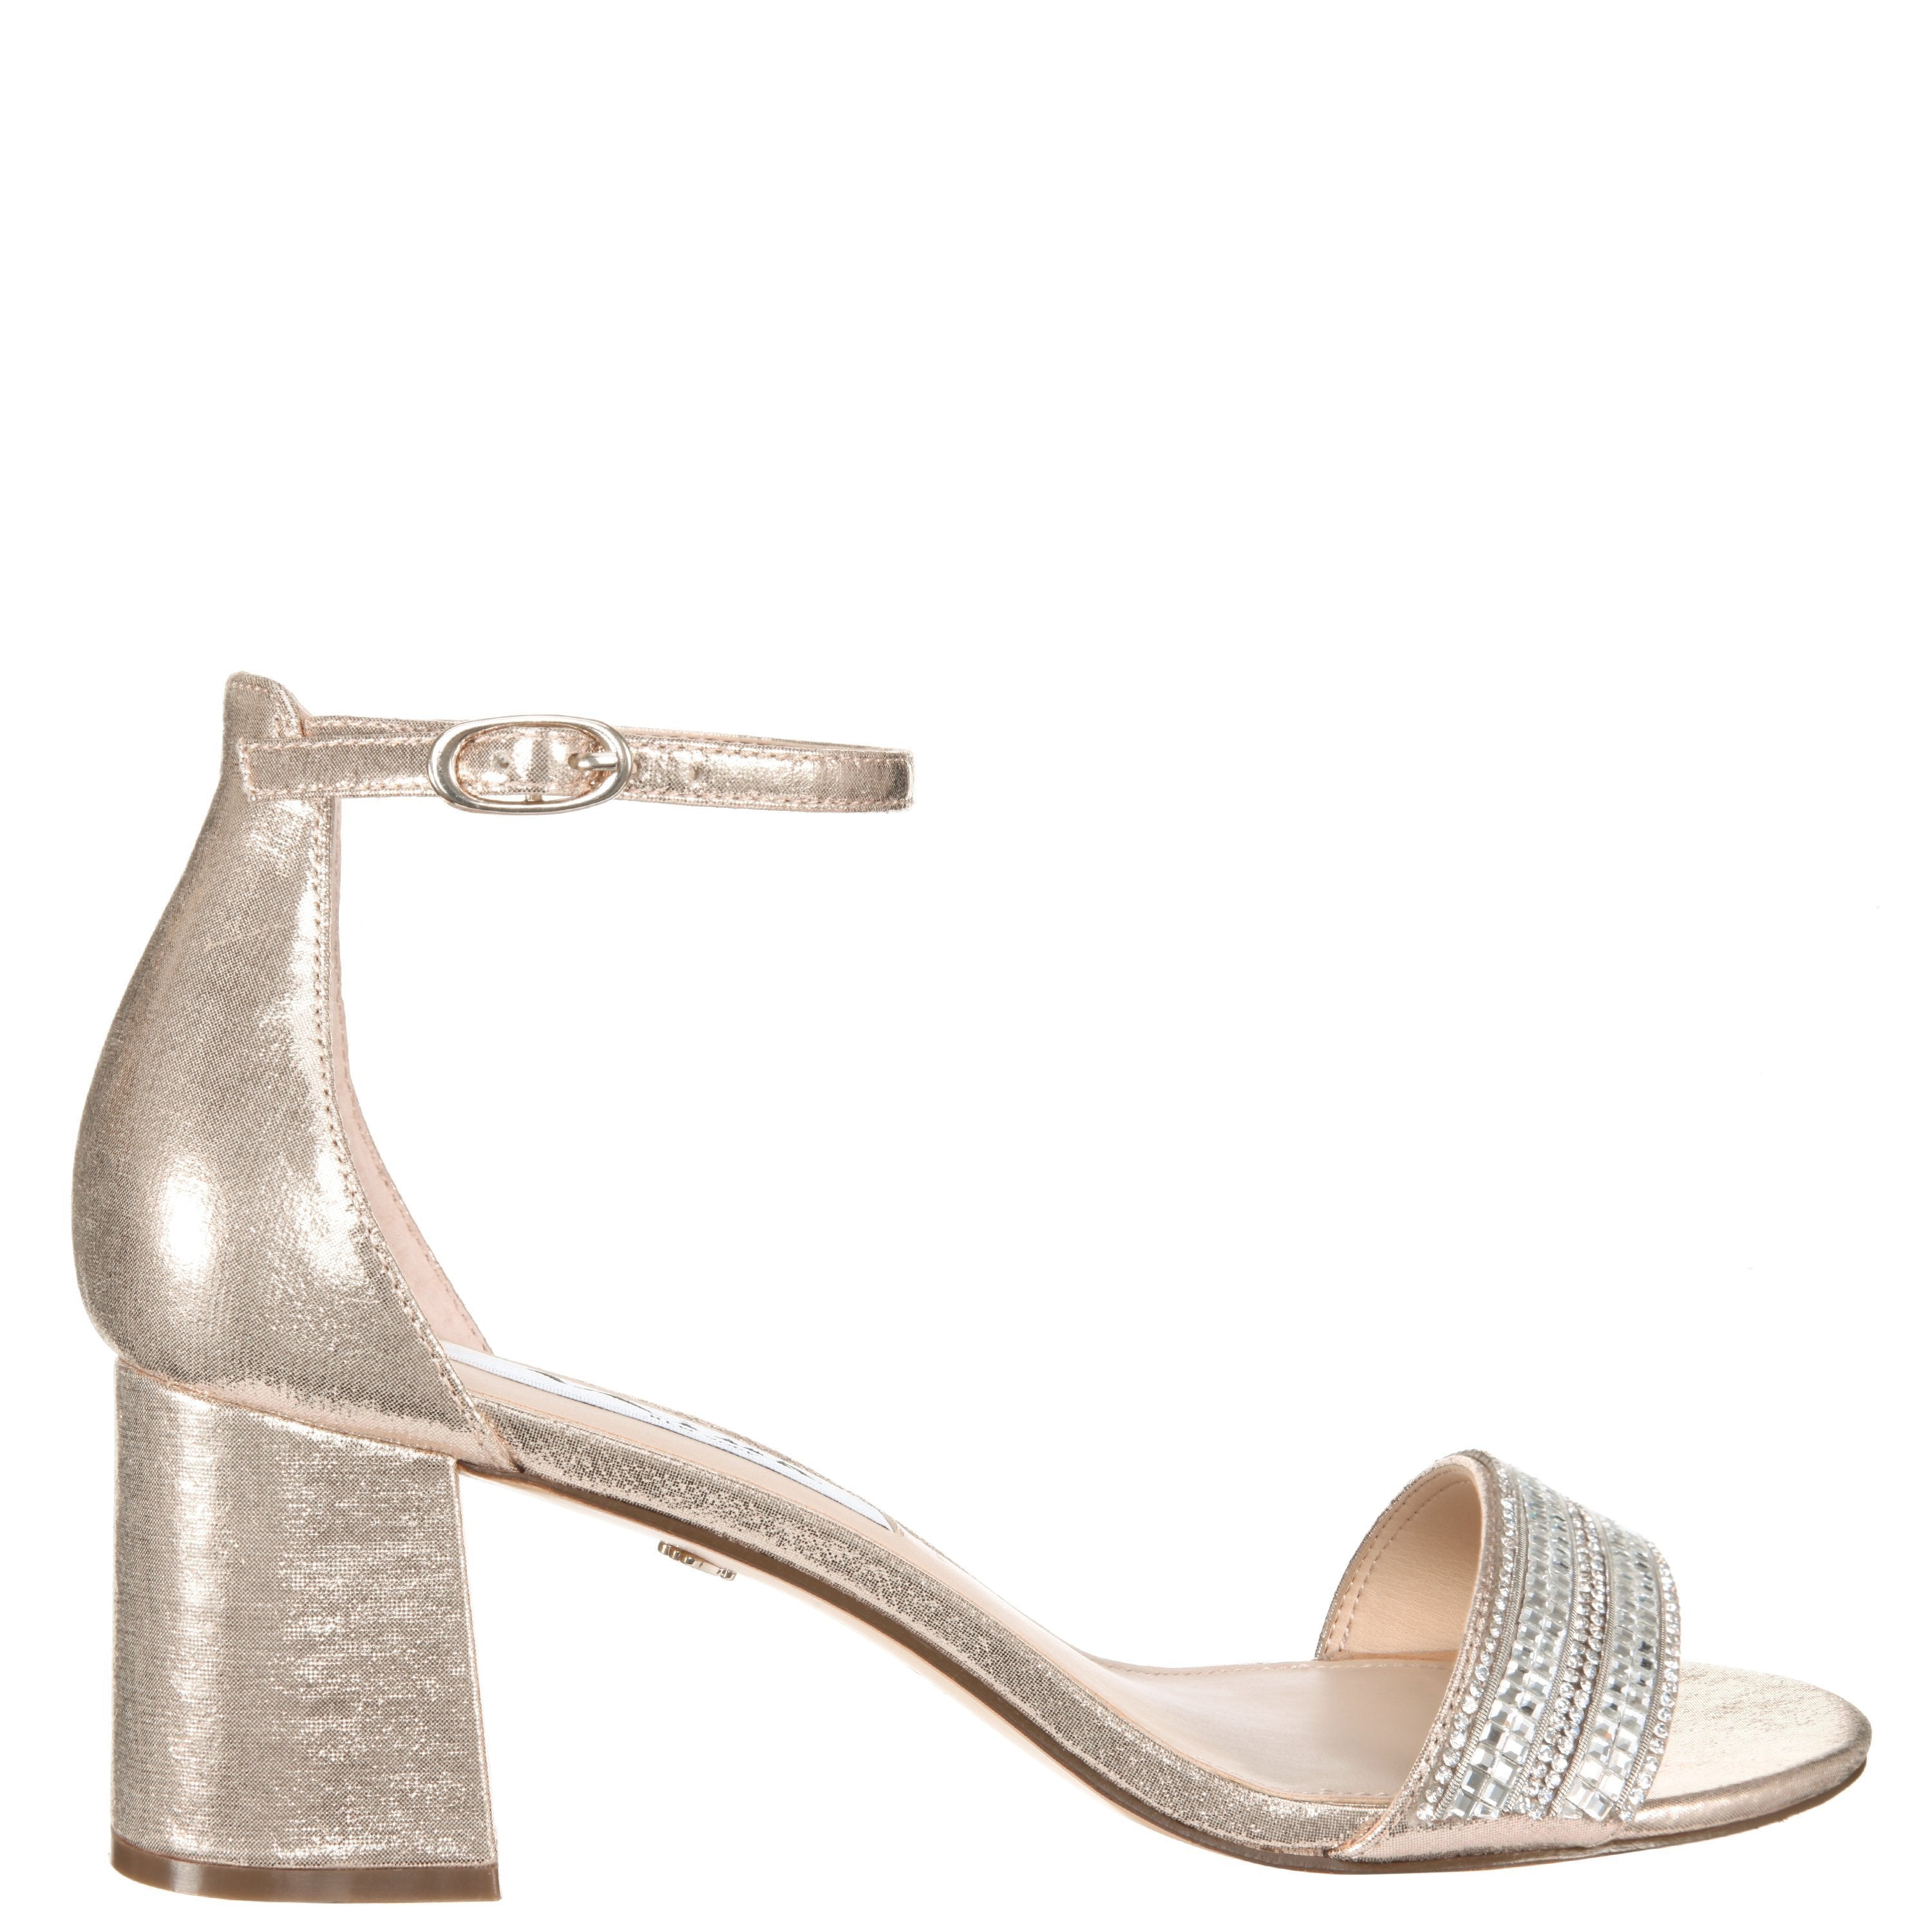 ELENORA-TAUPE REFLECTIVE SUEDETTE - TAUPE REFLECTIVE SUEDETTE